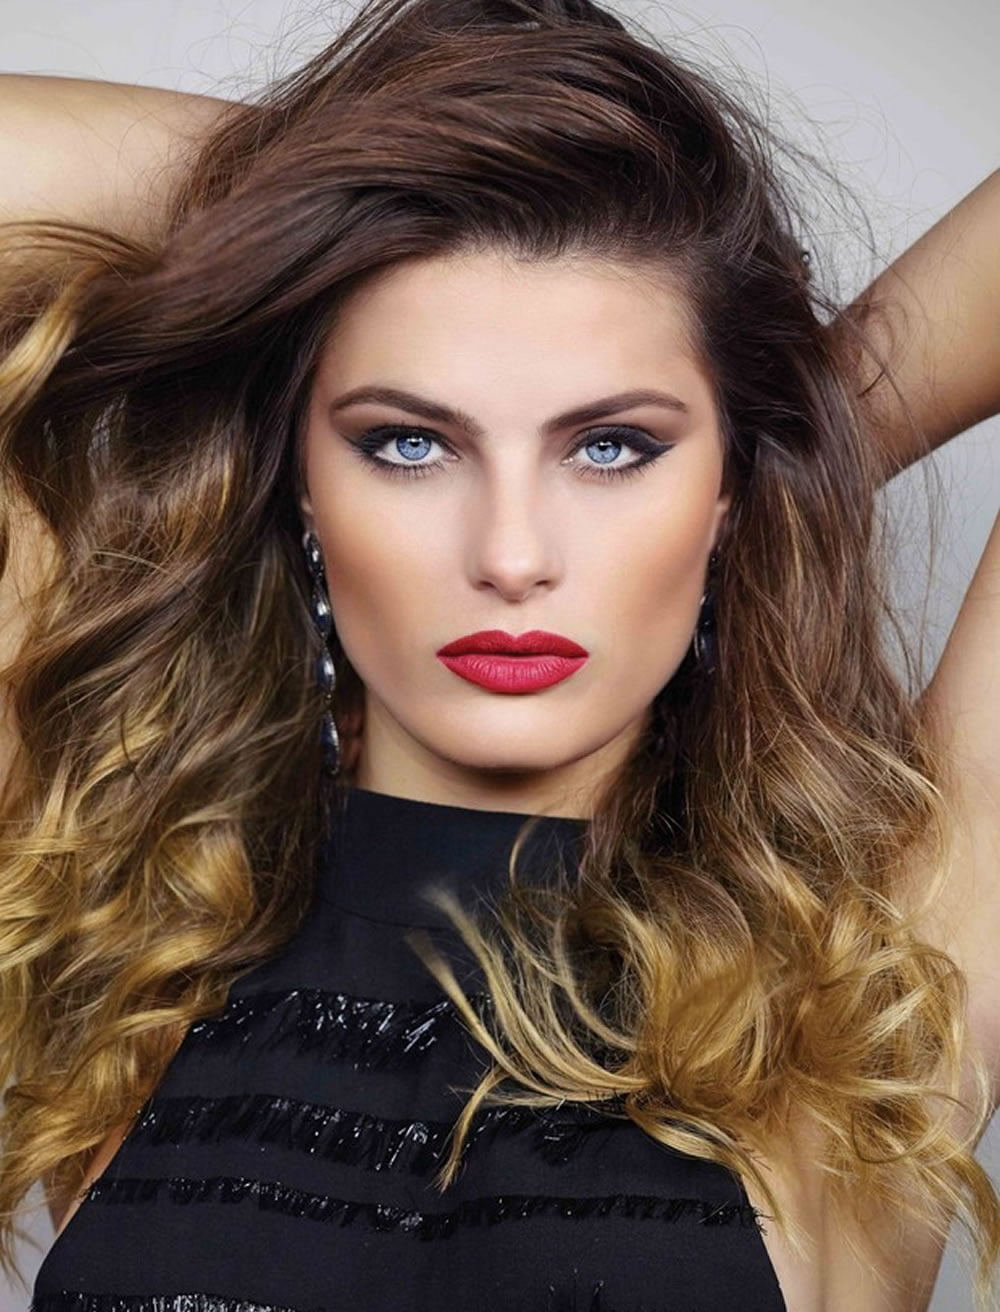 Womens Hairstyles for Fall Winter 2017-2018   Long, Short ...